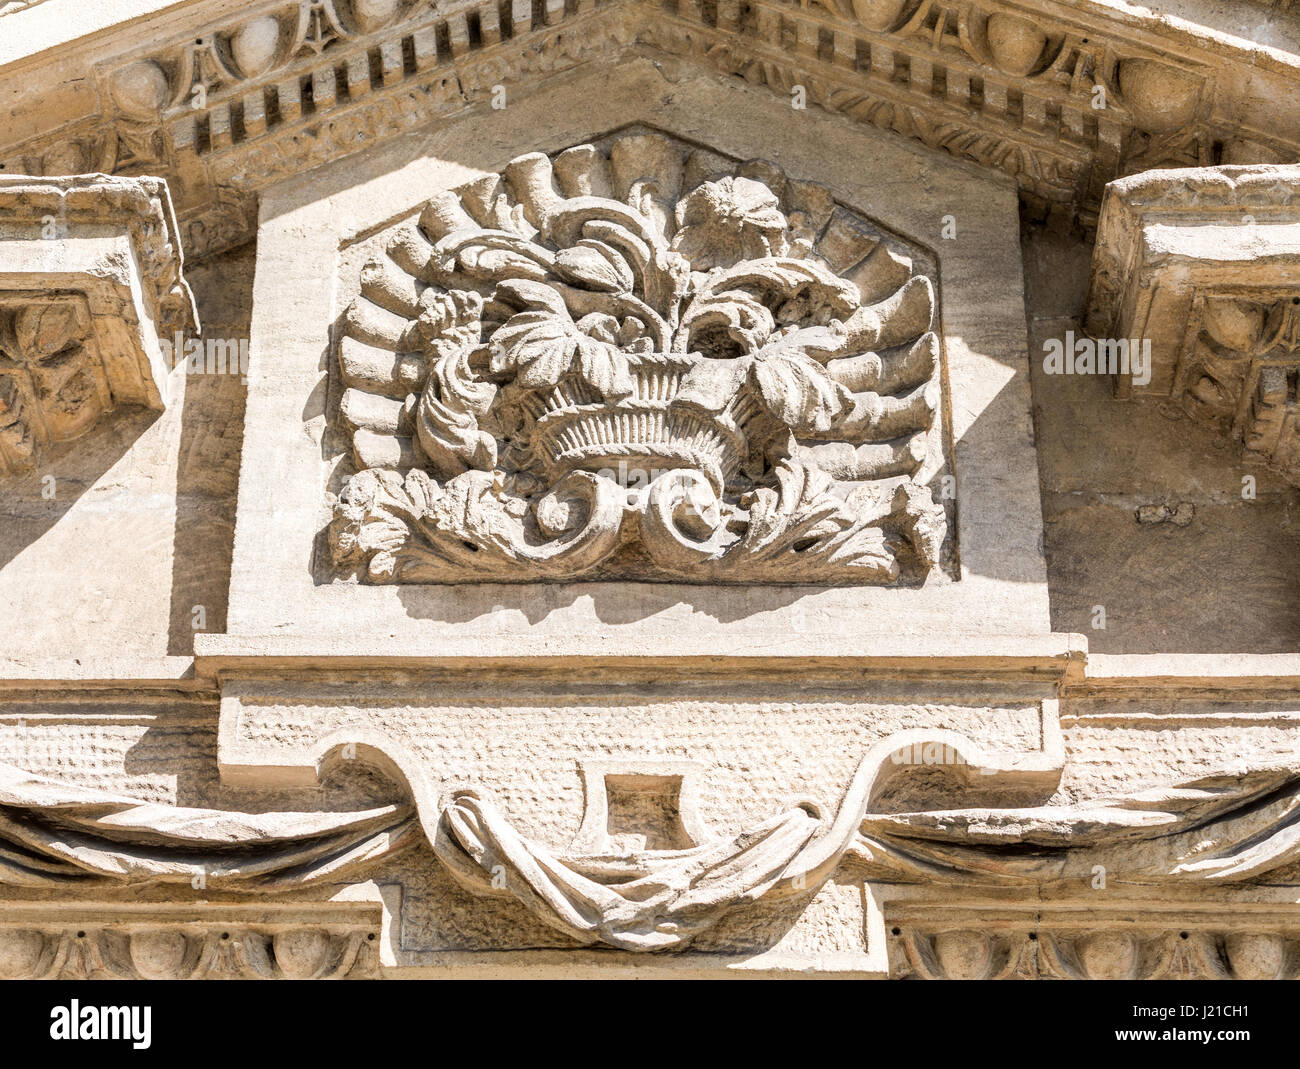 very old architectural detail in London, England, UK - Stock Image